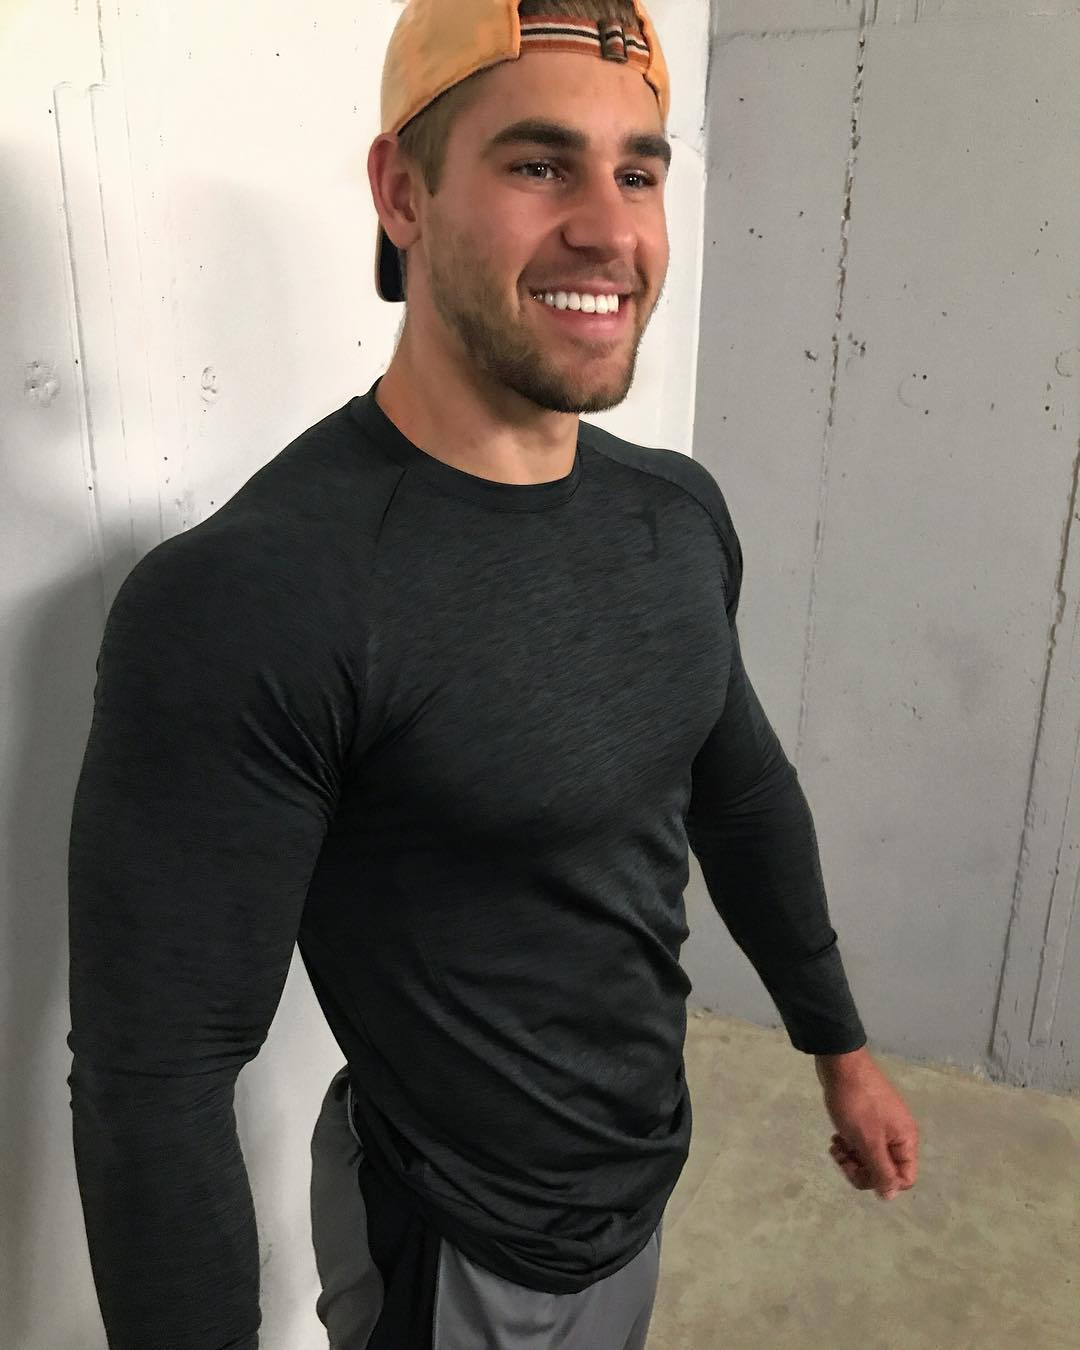 cute-beefy-dudes-smiling-strong-muscle-shirt-bro